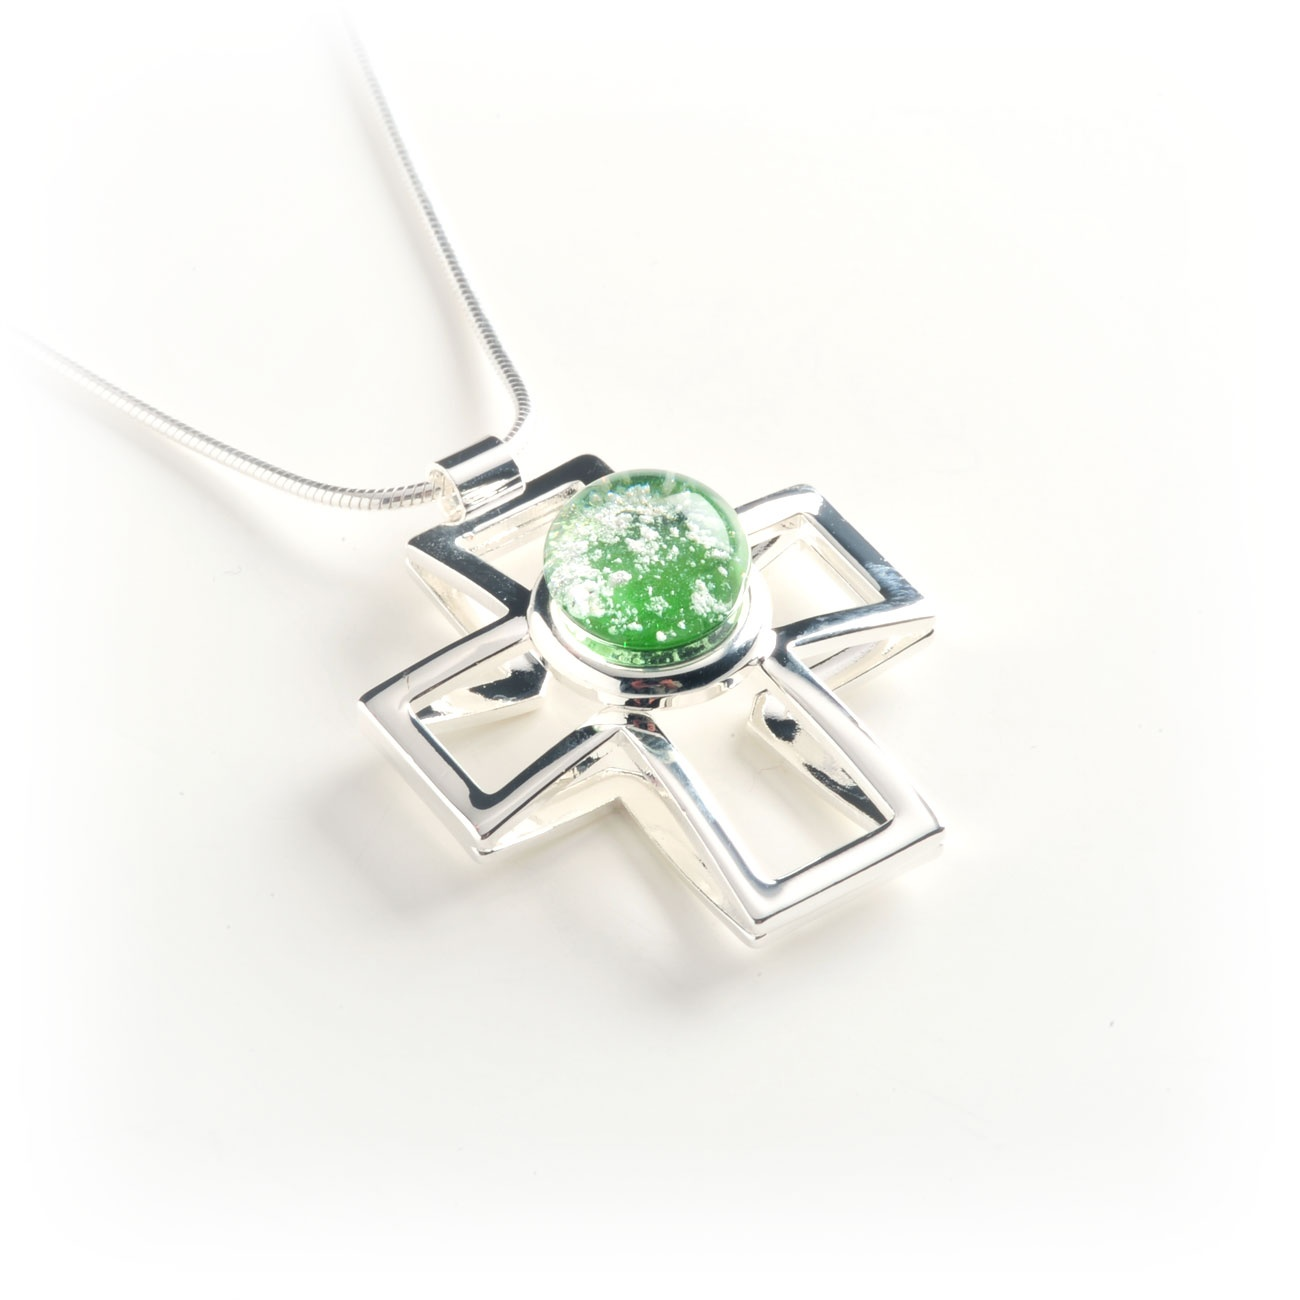 Grateful Glass20-8312green_cross_pendant.jpg550